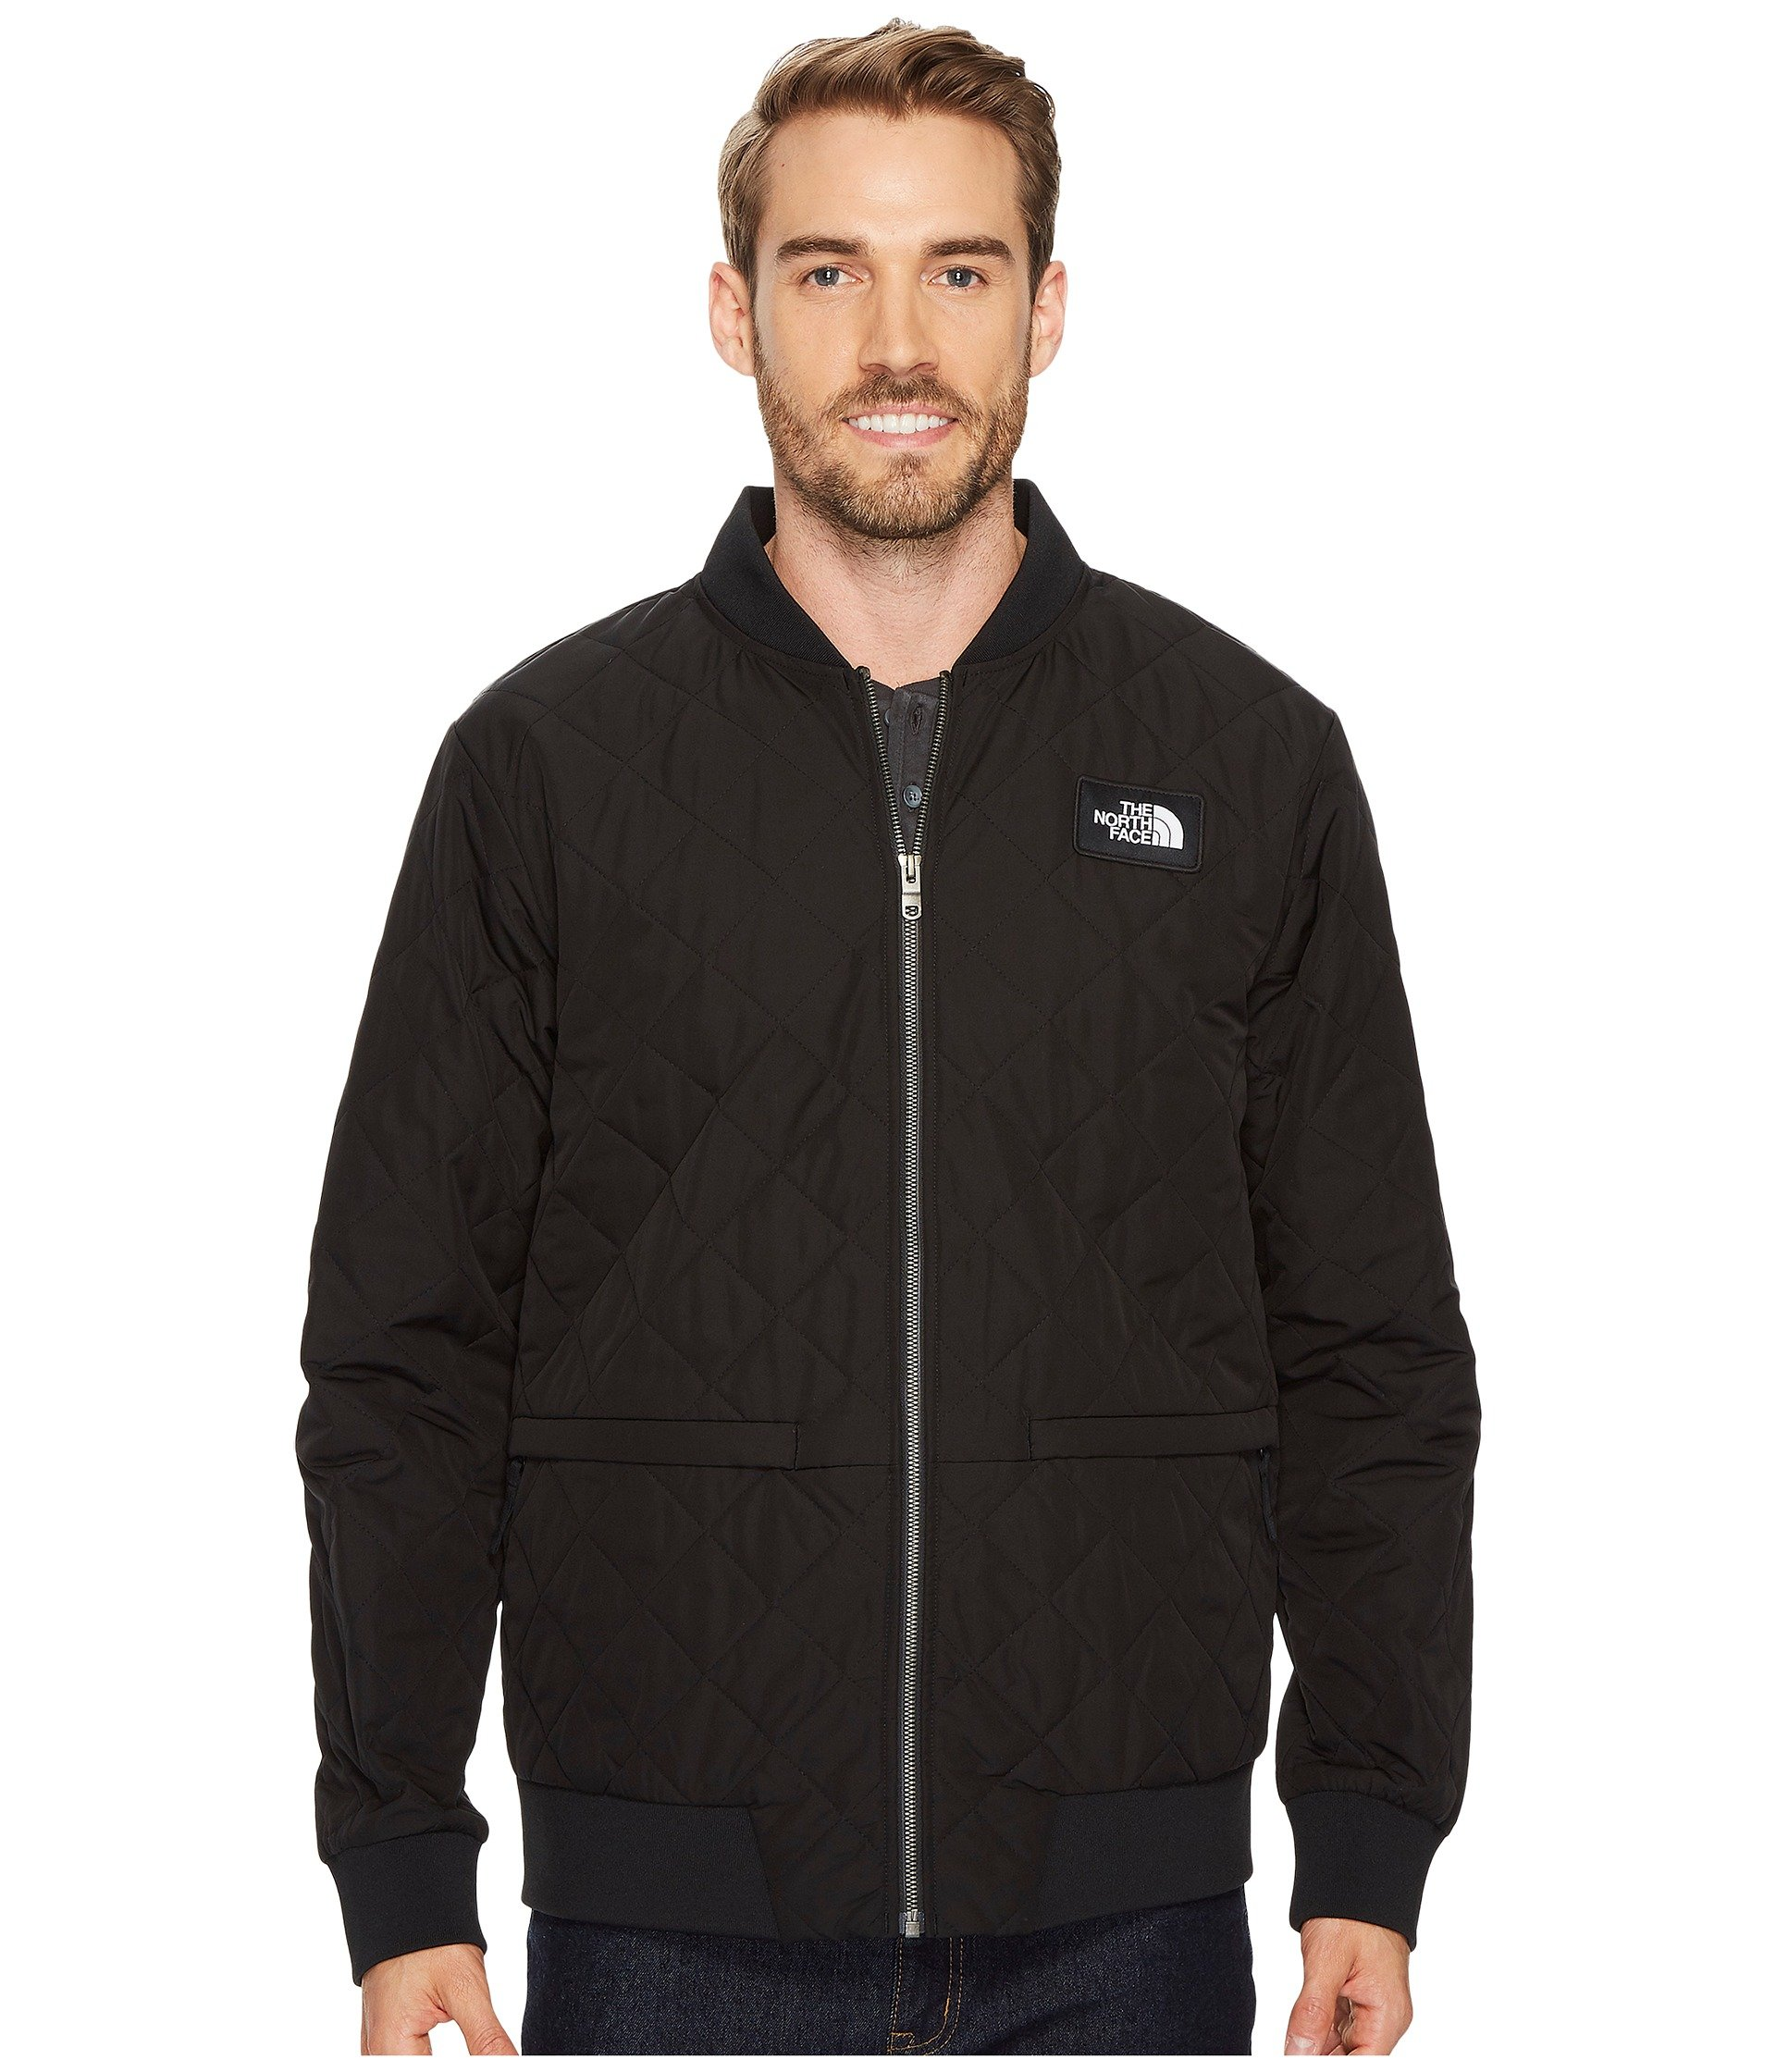 The North Face Distributor Jacket (TNF Black/Turbulence Grey)